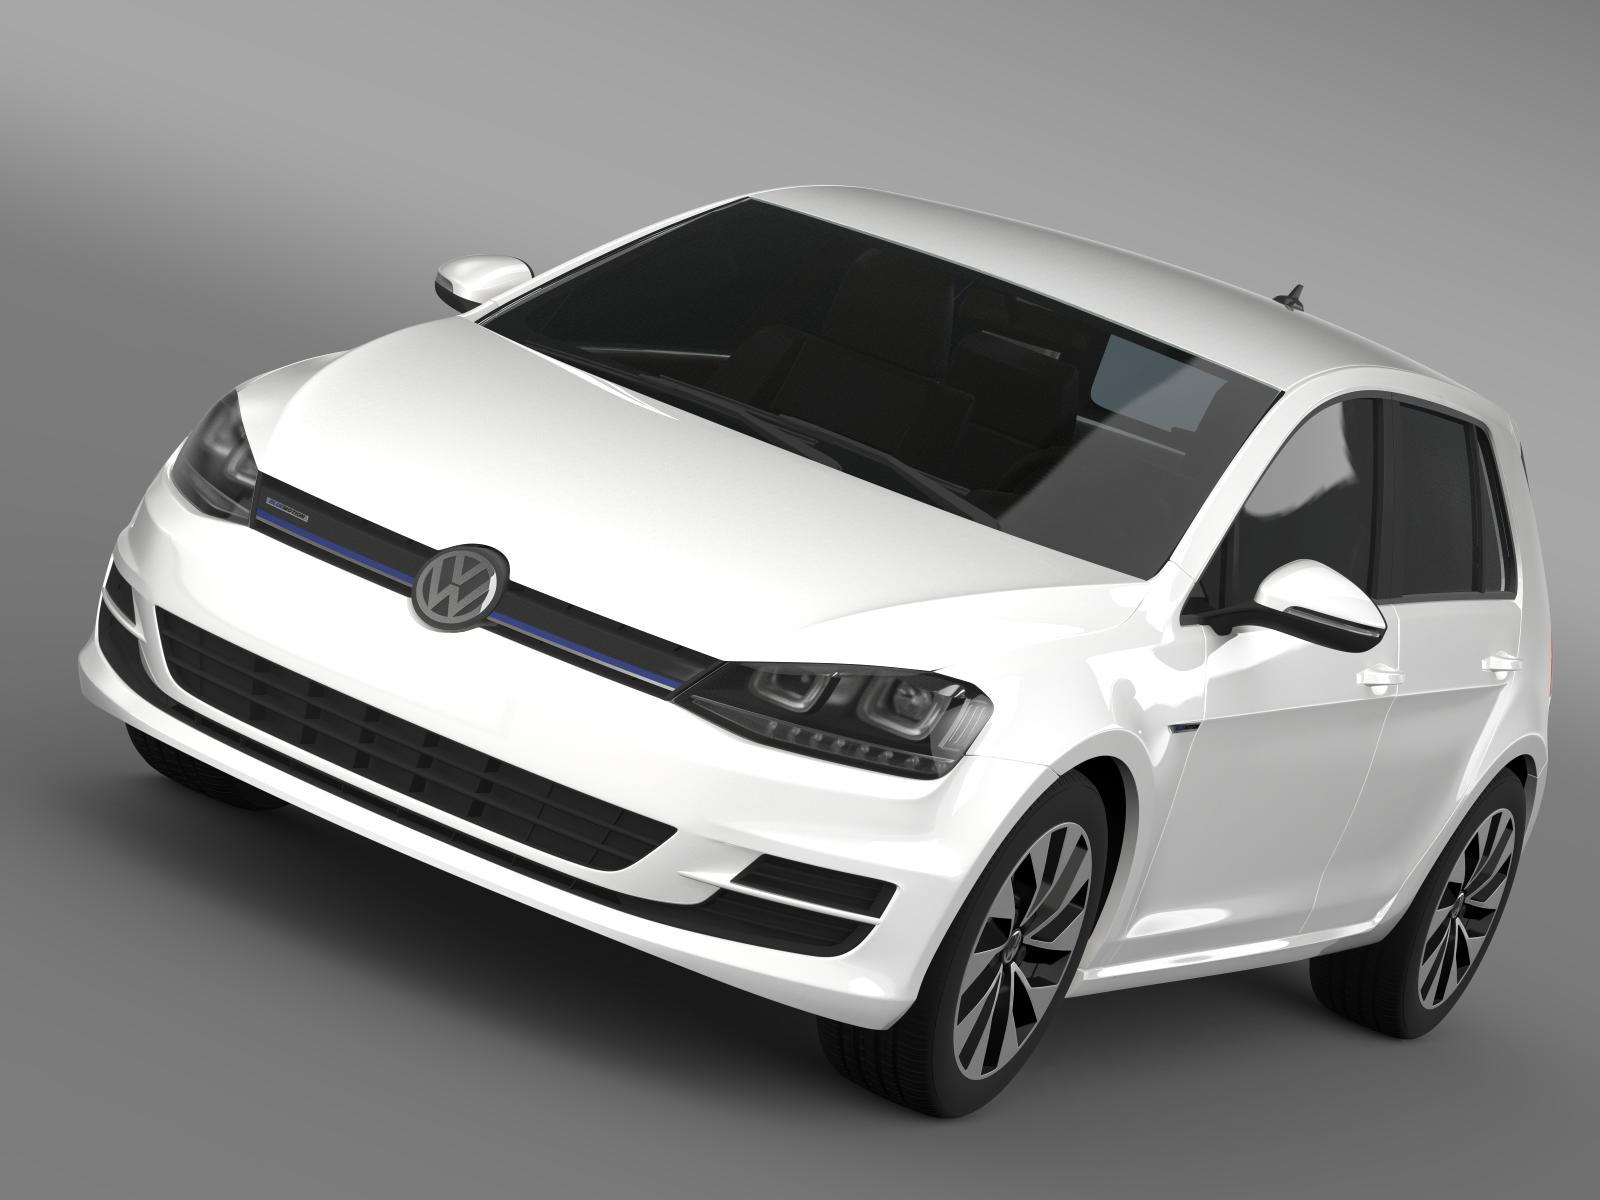 vw golf bluemotion concept typ 5g 2012 3d model 3ds max fbx c4d lwo ma mb hrc xsi obj 165971